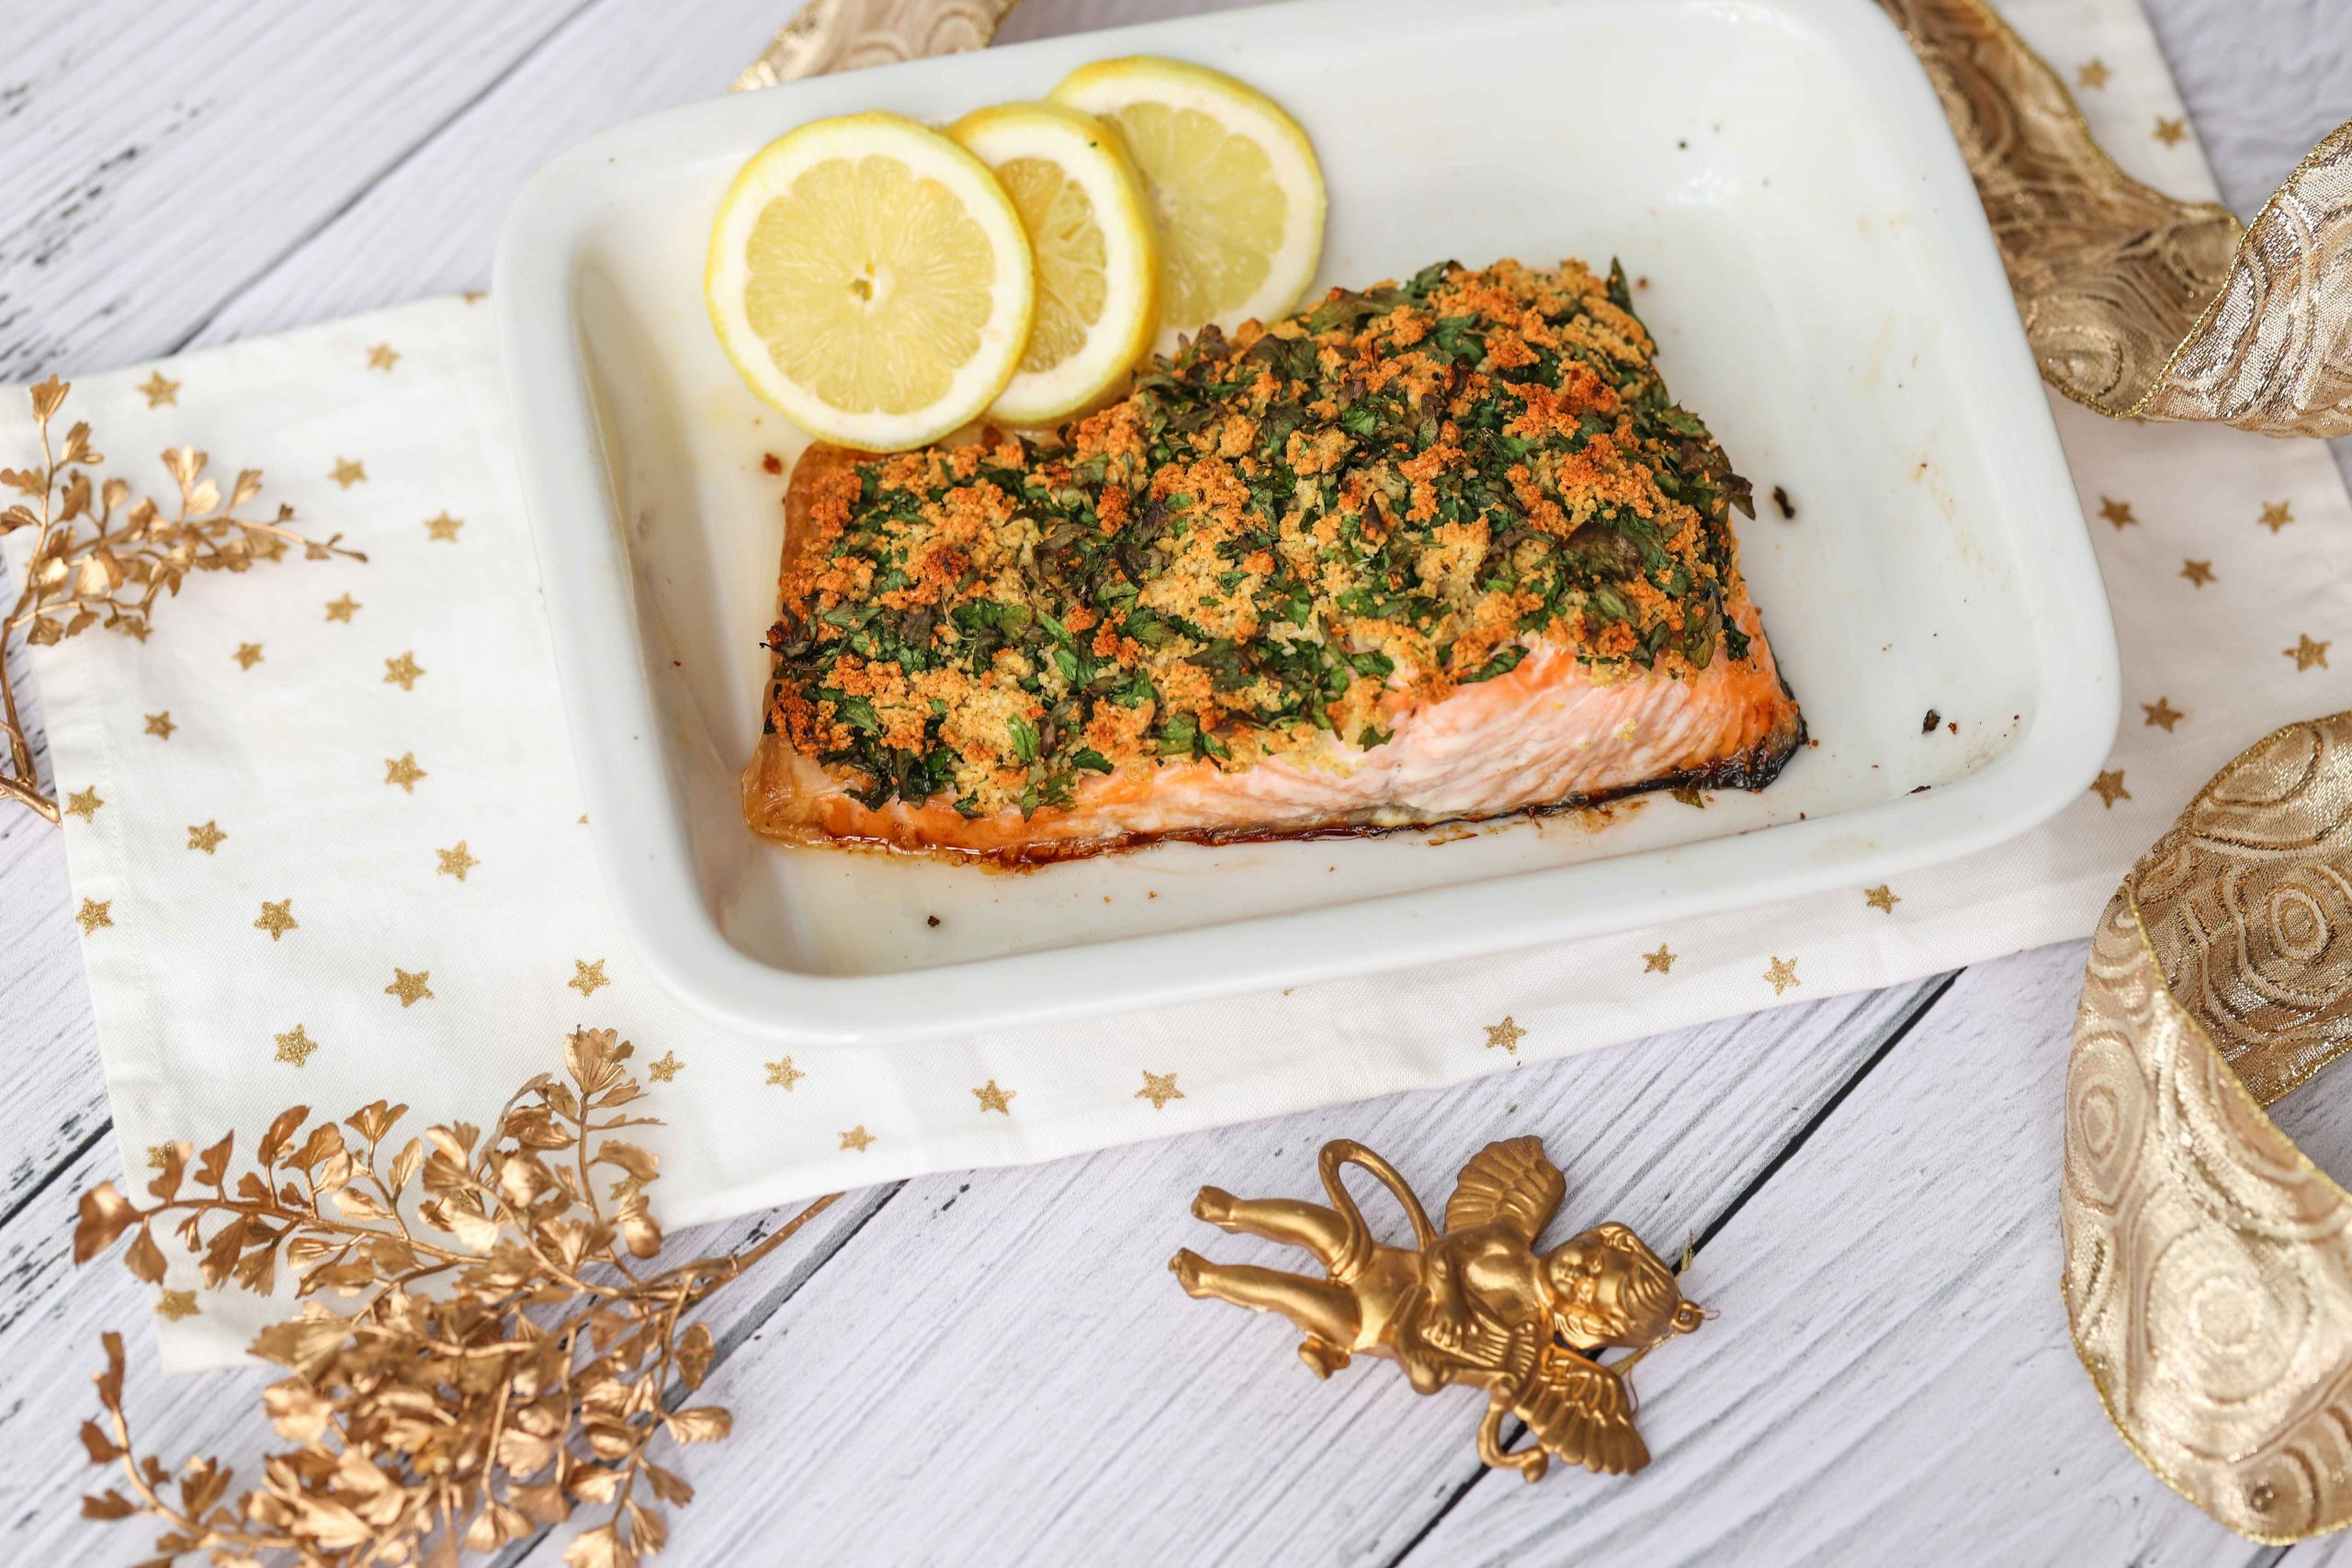 Salmon with herbed crust